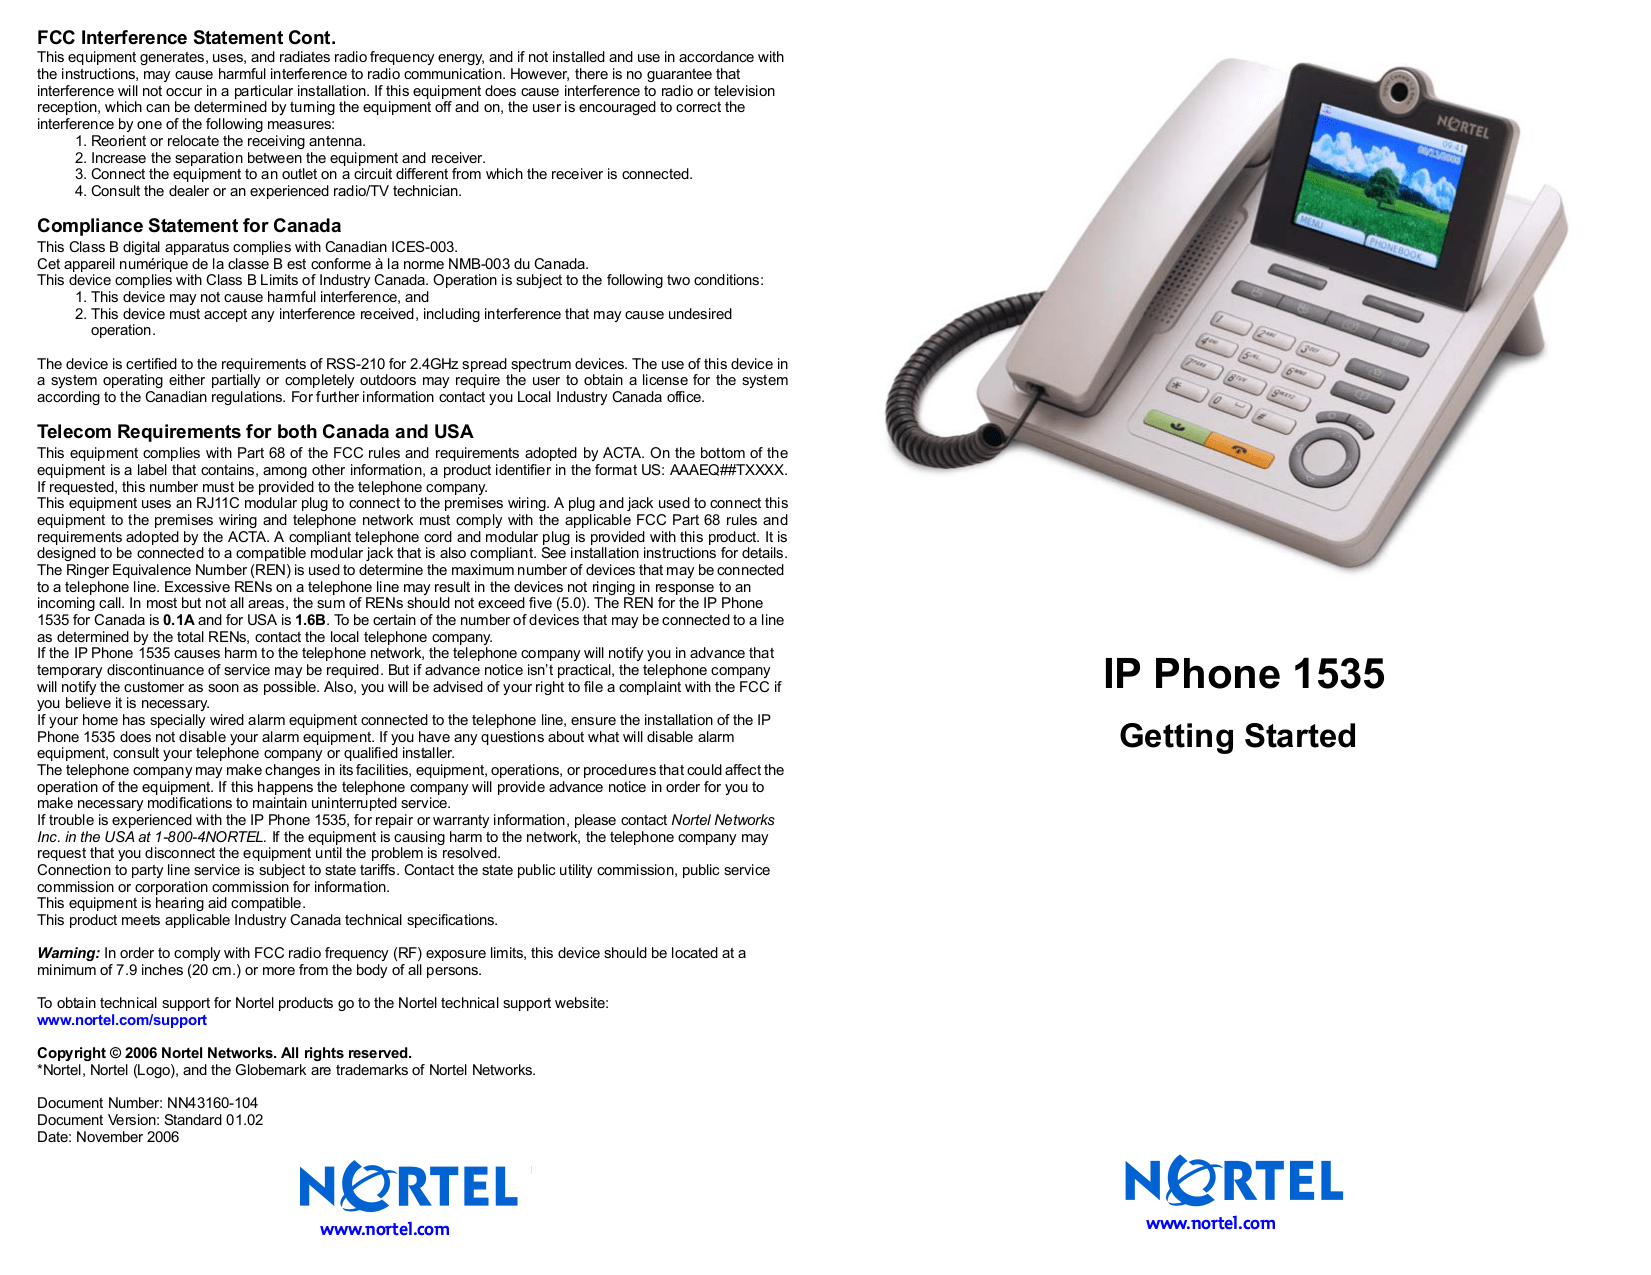 Download free pdf for Nortel 1535 Telephone manual